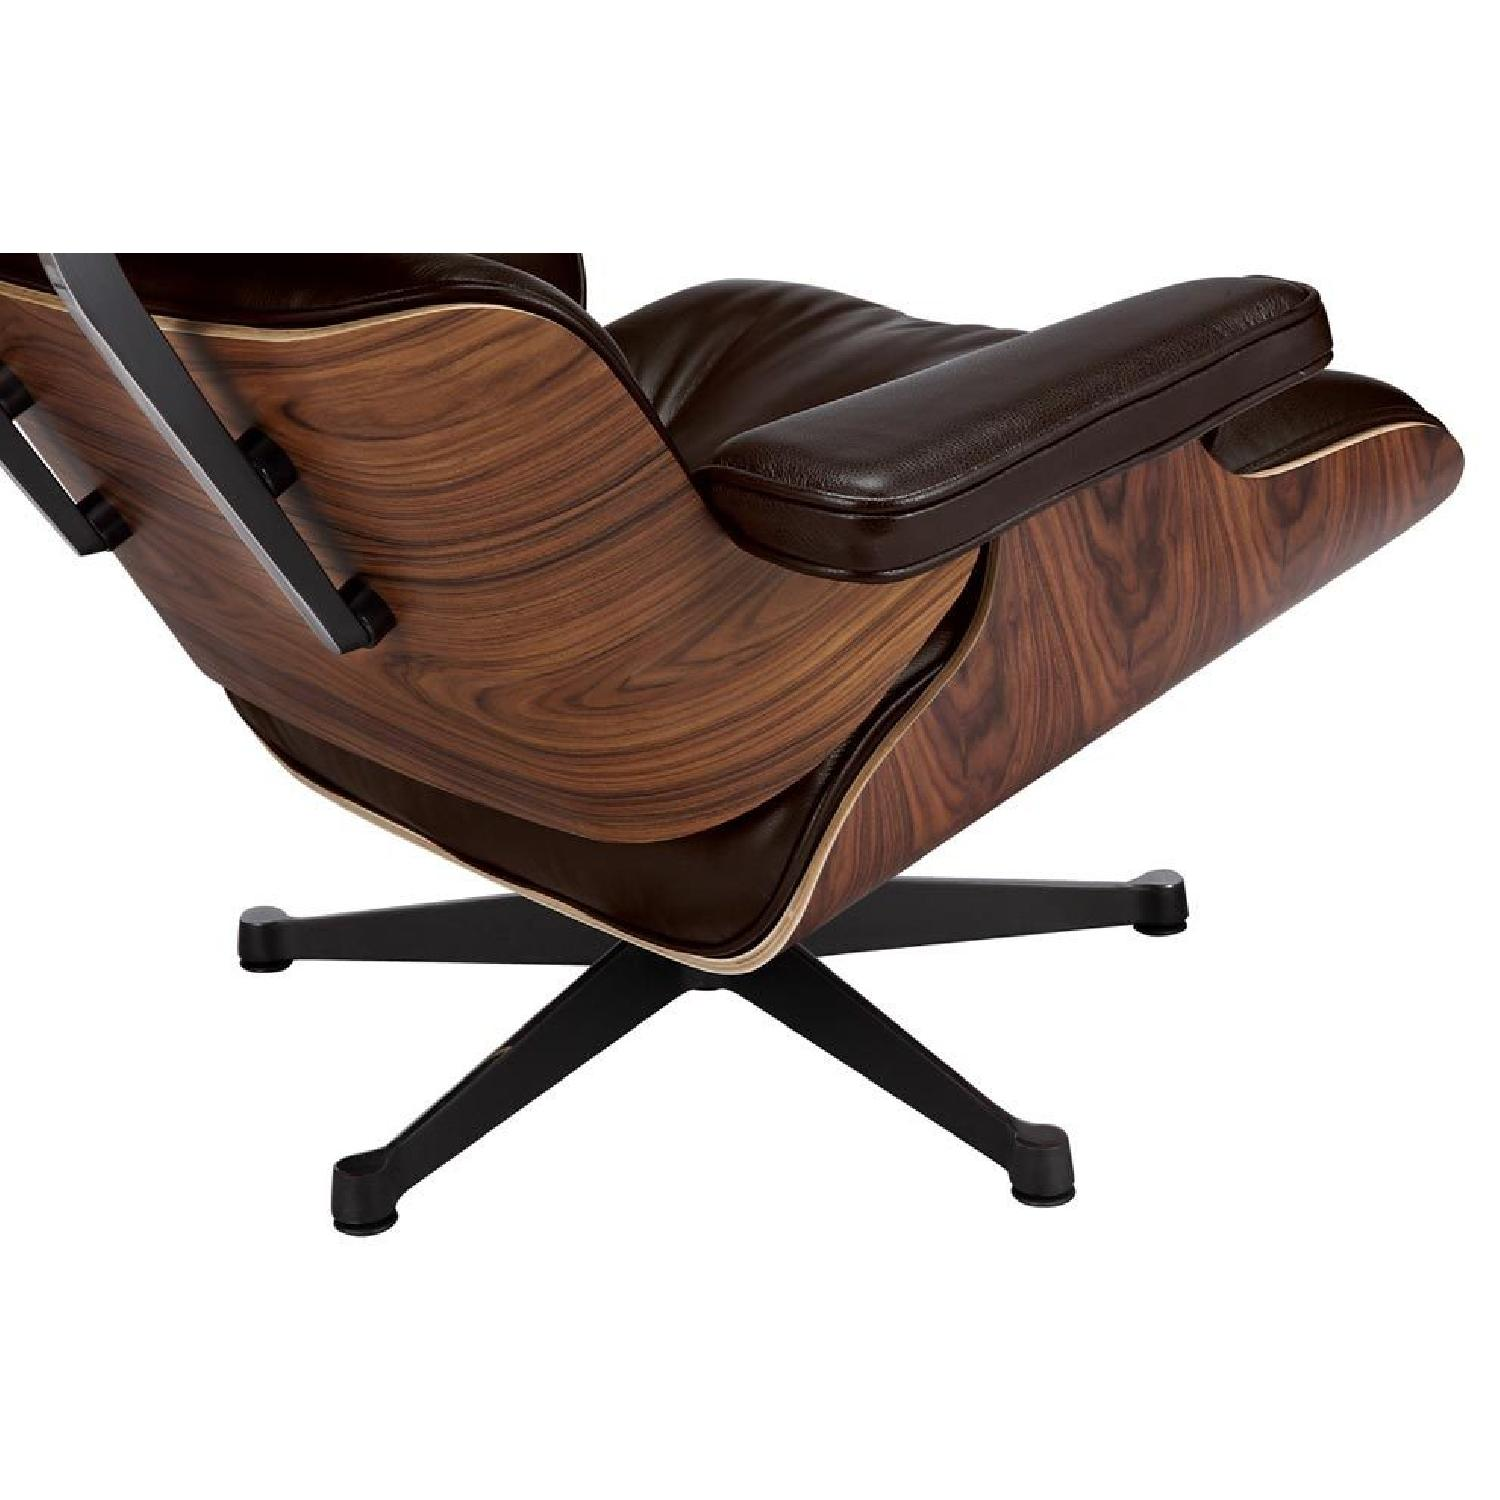 Surprising Eames Lounge Chair Replica In Brown Aptdeco Pabps2019 Chair Design Images Pabps2019Com